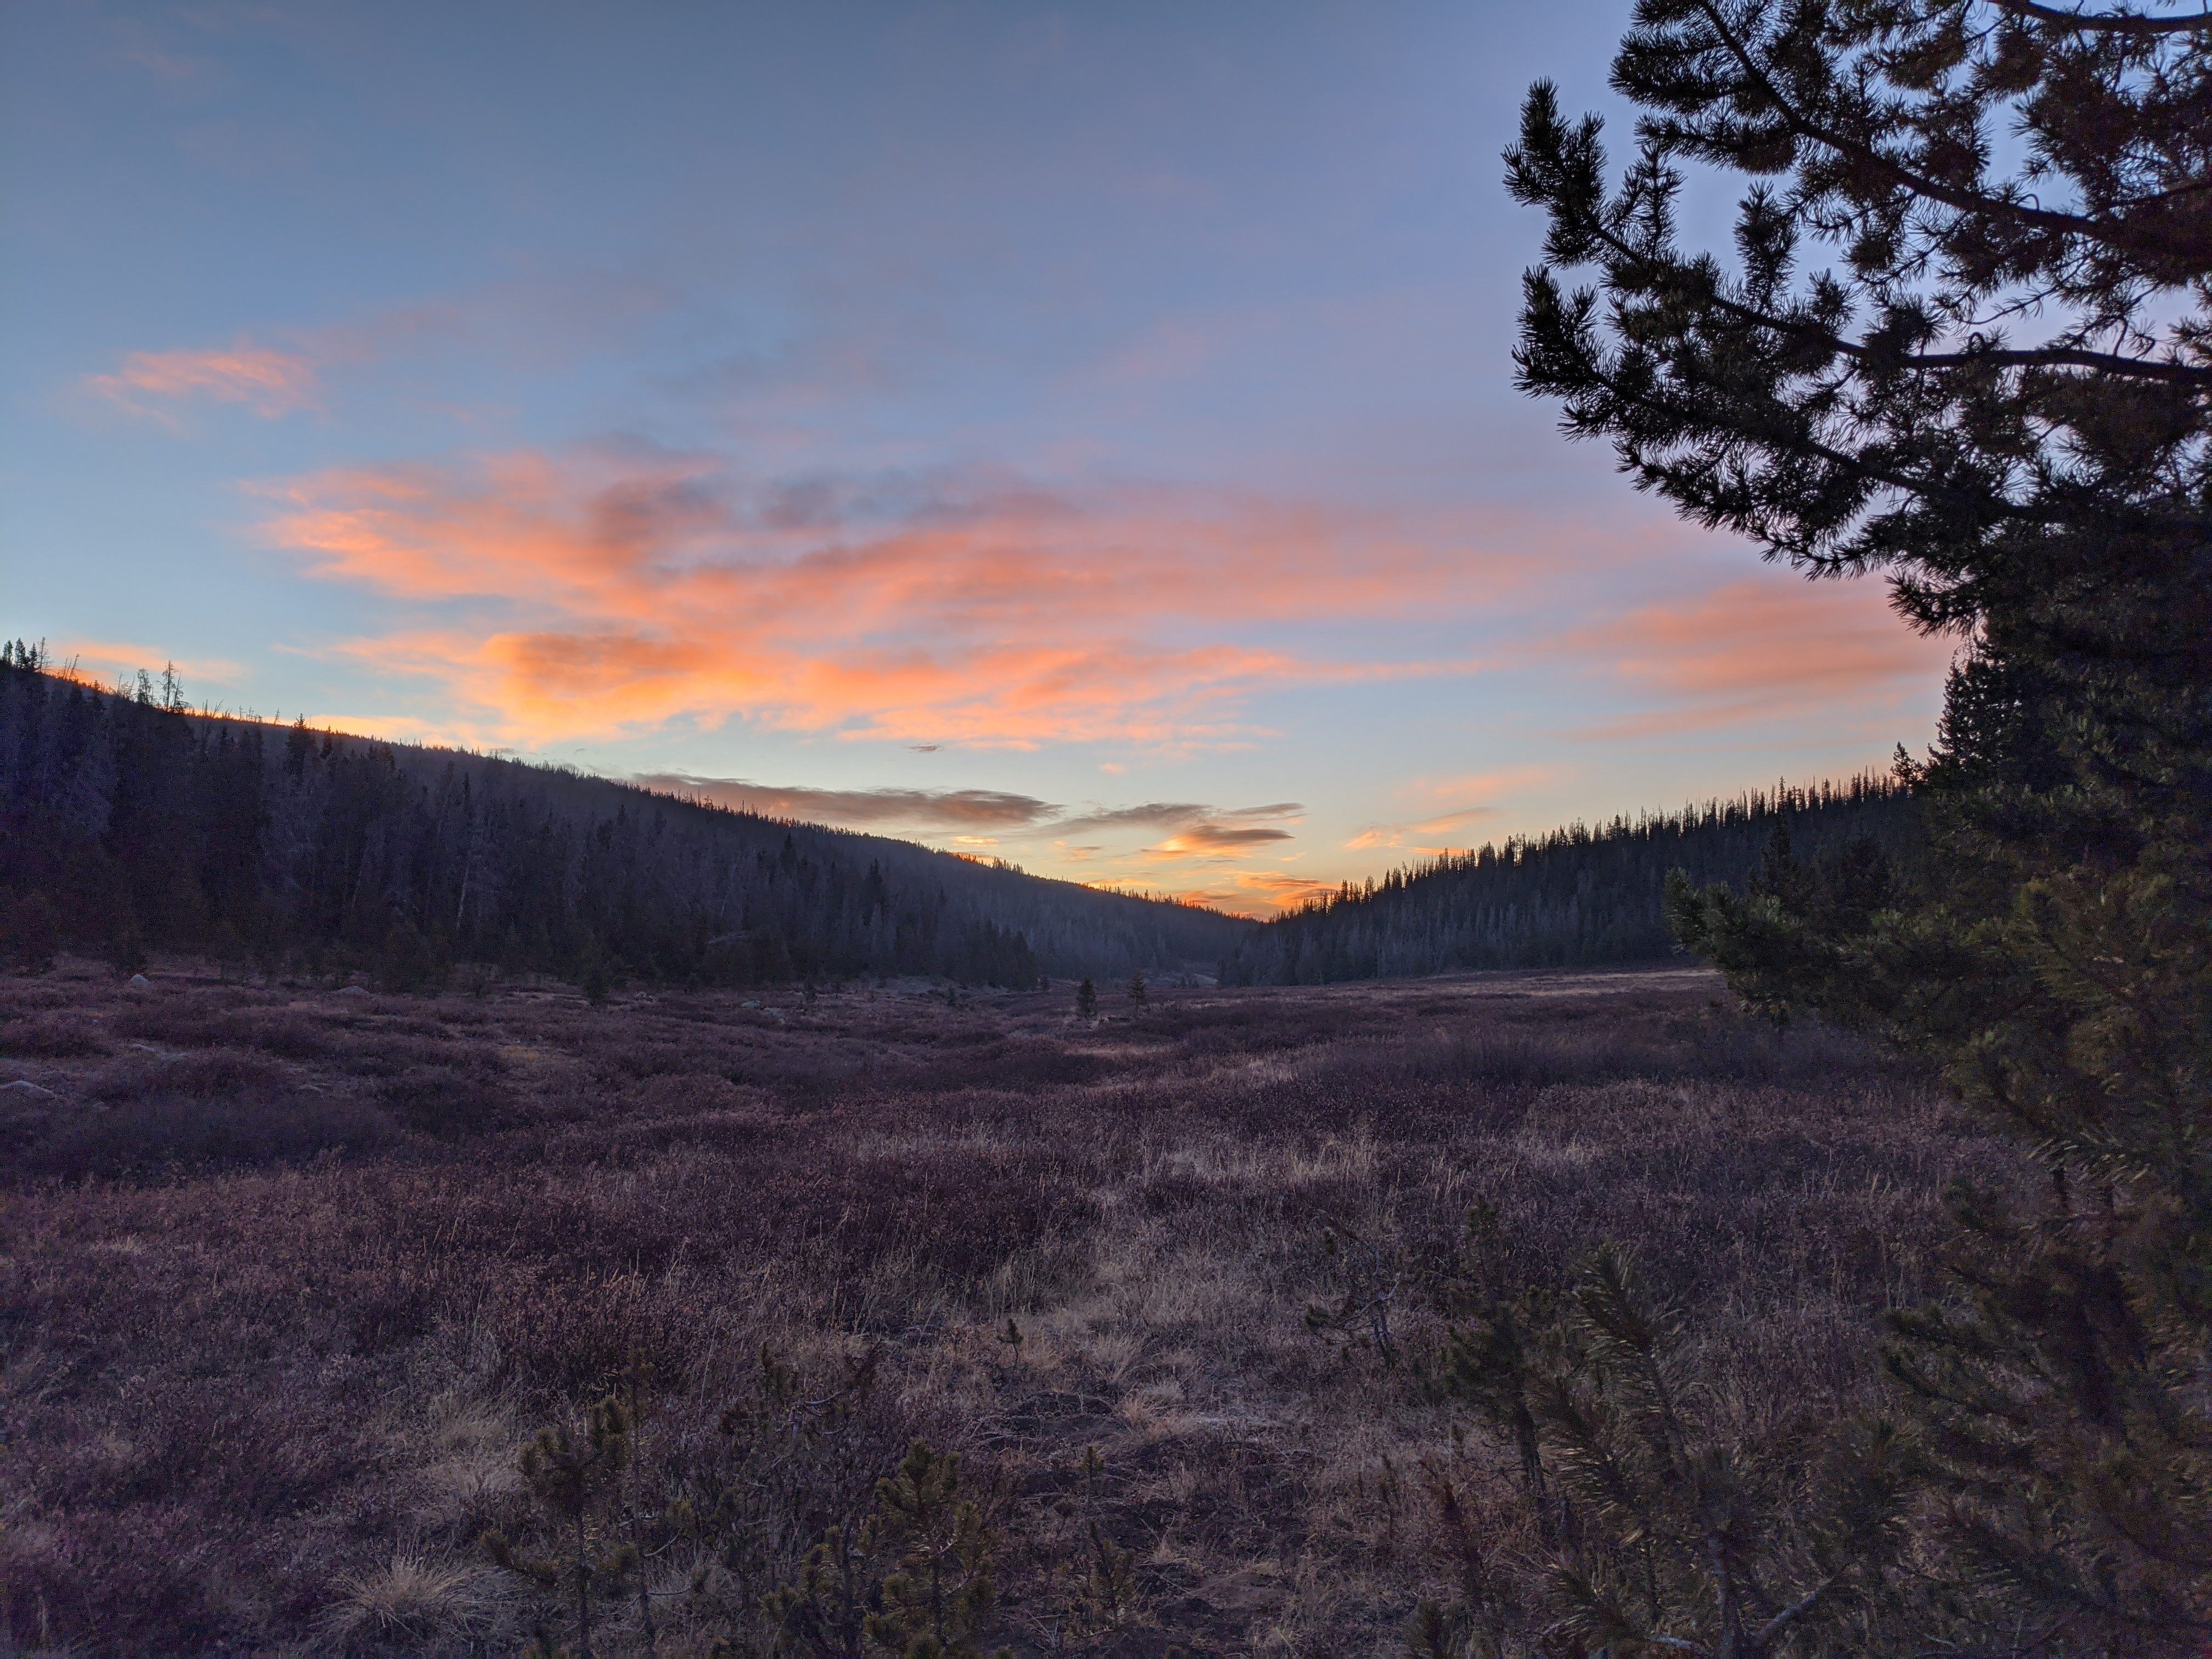 Sunrise on opening morning before some smoke rolled into the valley.